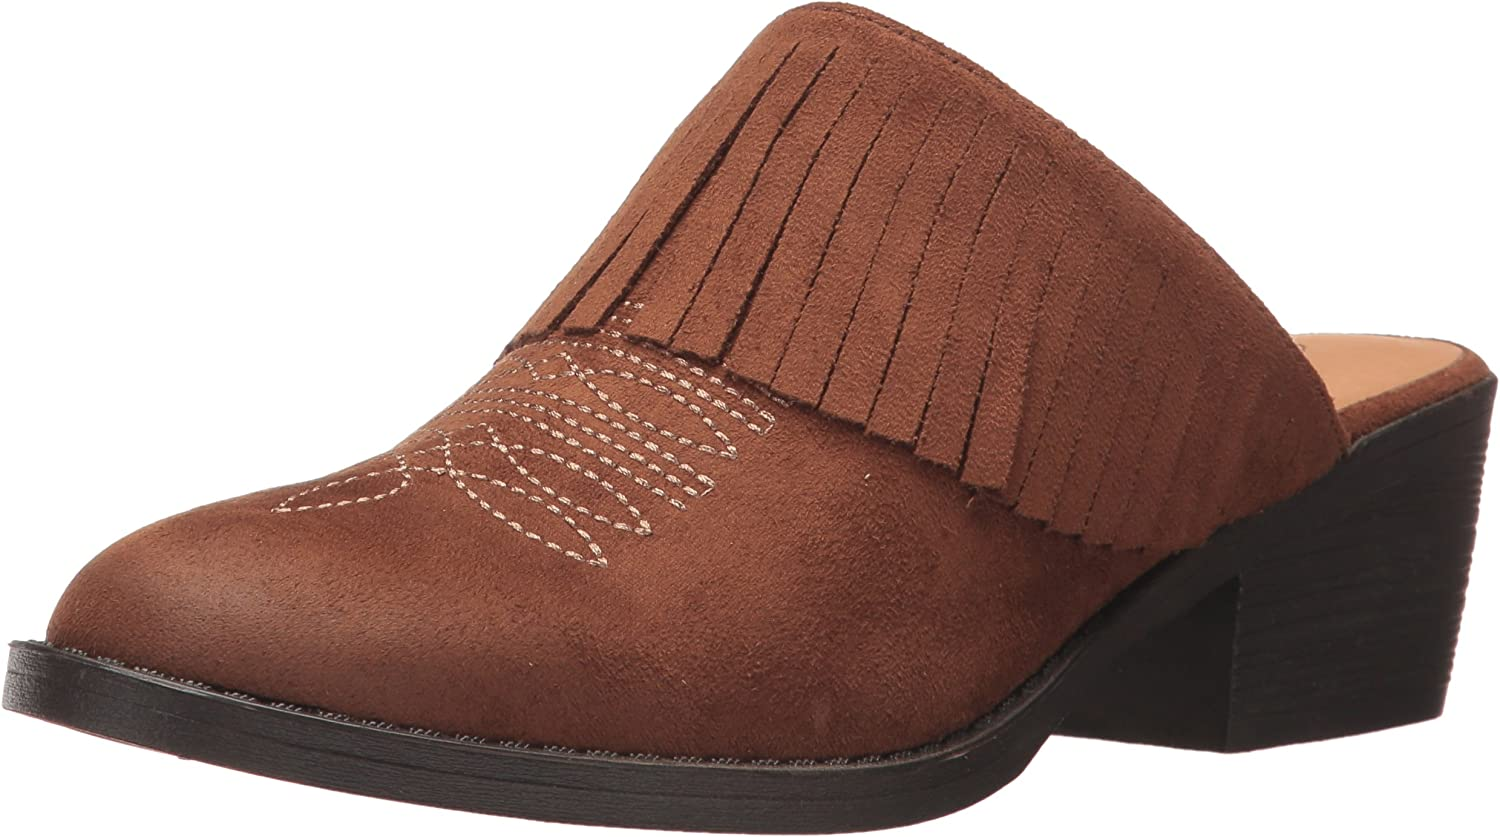 Ariat Women's Quantity limited Popular brand Unbridled Work Boot Shirley